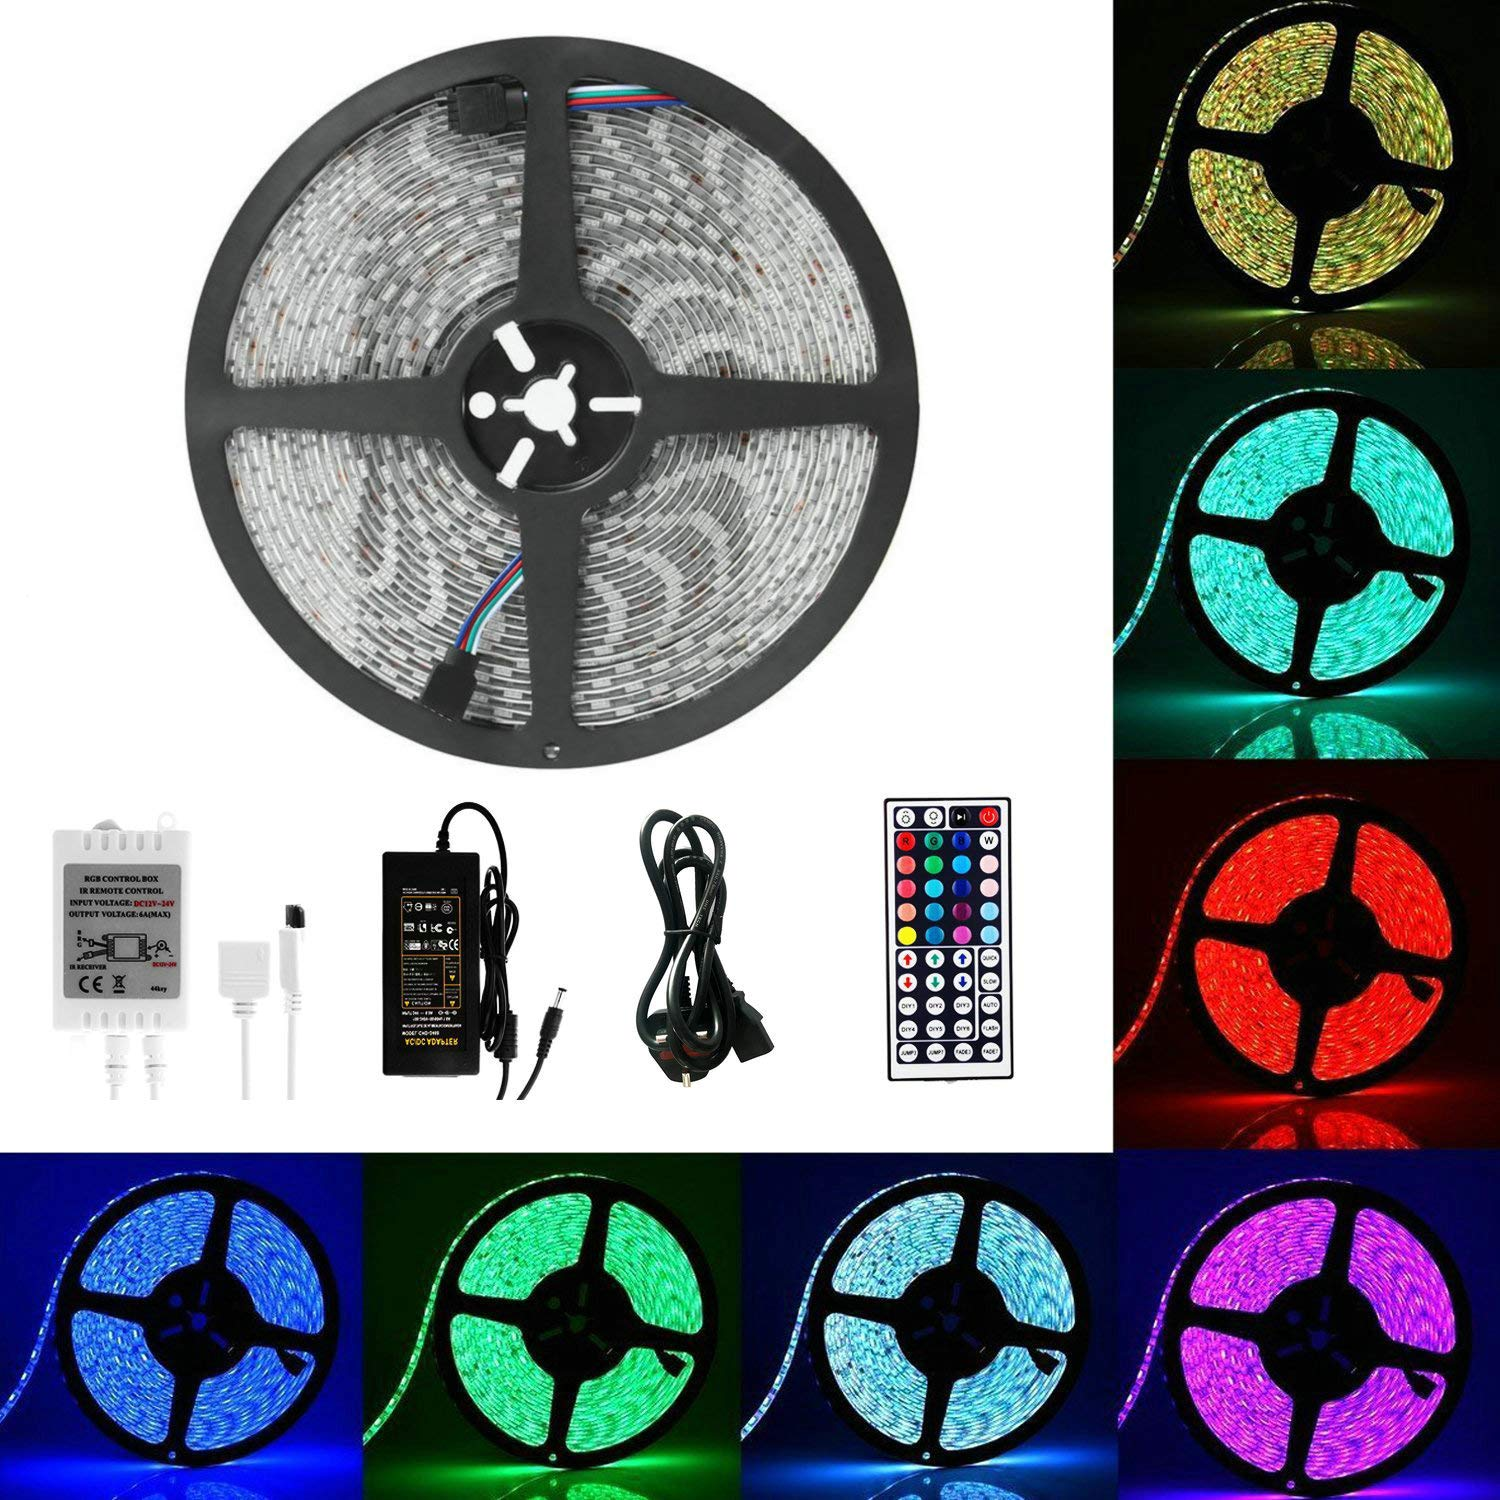 LED Strip Lights, Guaiboshi 5M RGB 5050 Waterproof LED Light Strips Color Changing Full Kit with 44-keys IR Remote Controller & 12V Power Supply LED Rope Lights for Home Christmas Indoor and Outdoor Decorate Lighting [Energy Class A+]